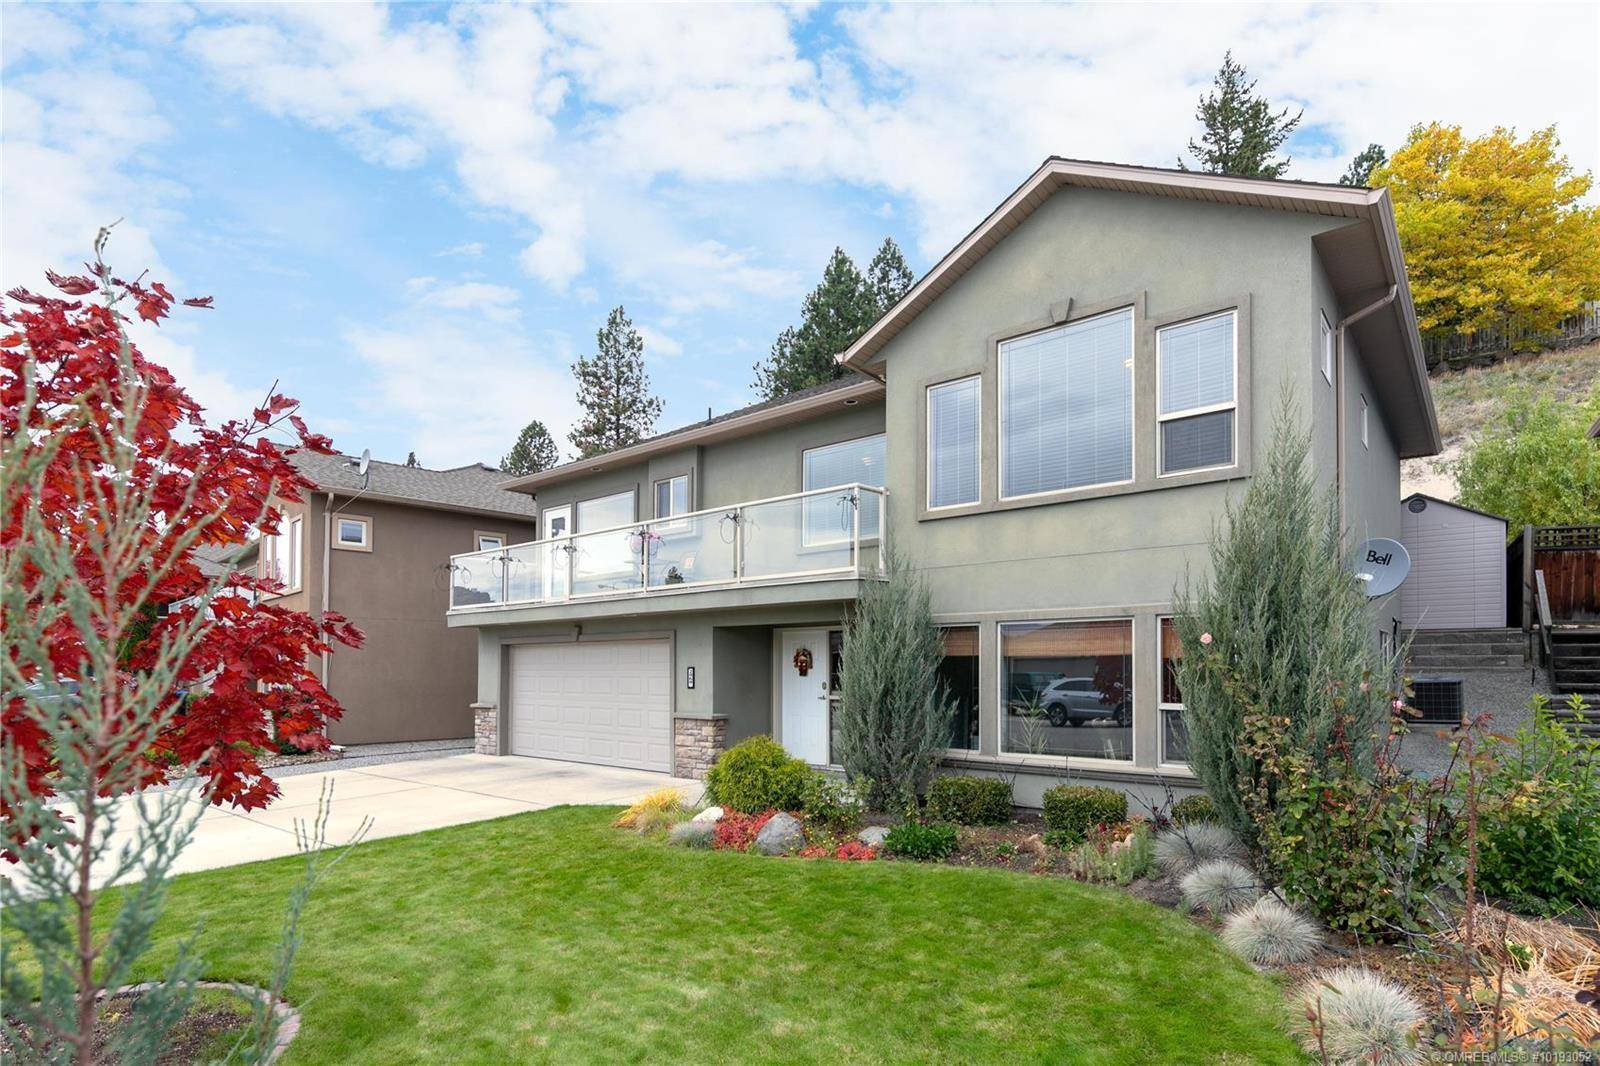 House for sale at 2060 Spyglass Wy West Kelowna British Columbia - MLS: 10193052